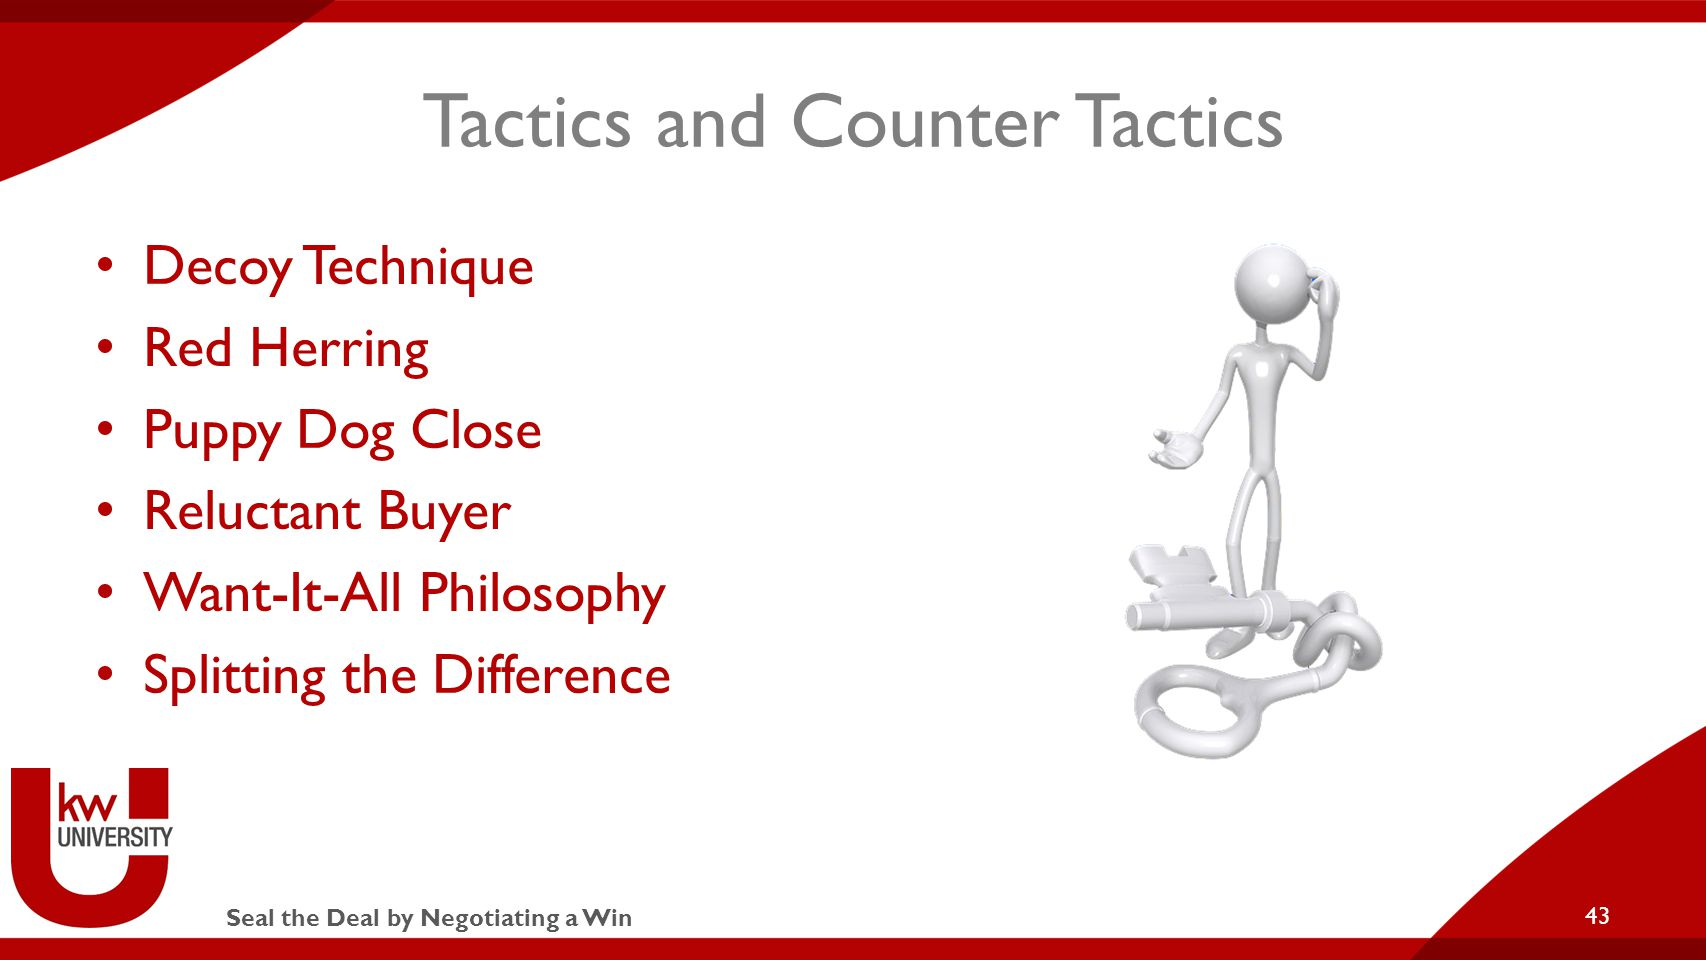 Seal the Deal by Negotiating a Win Tactics and Counter Tactics Decoy Technique Red Herring Puppy Dog Close Reluctant Buyer Want-It-All Philosophy Splitting the Difference 43